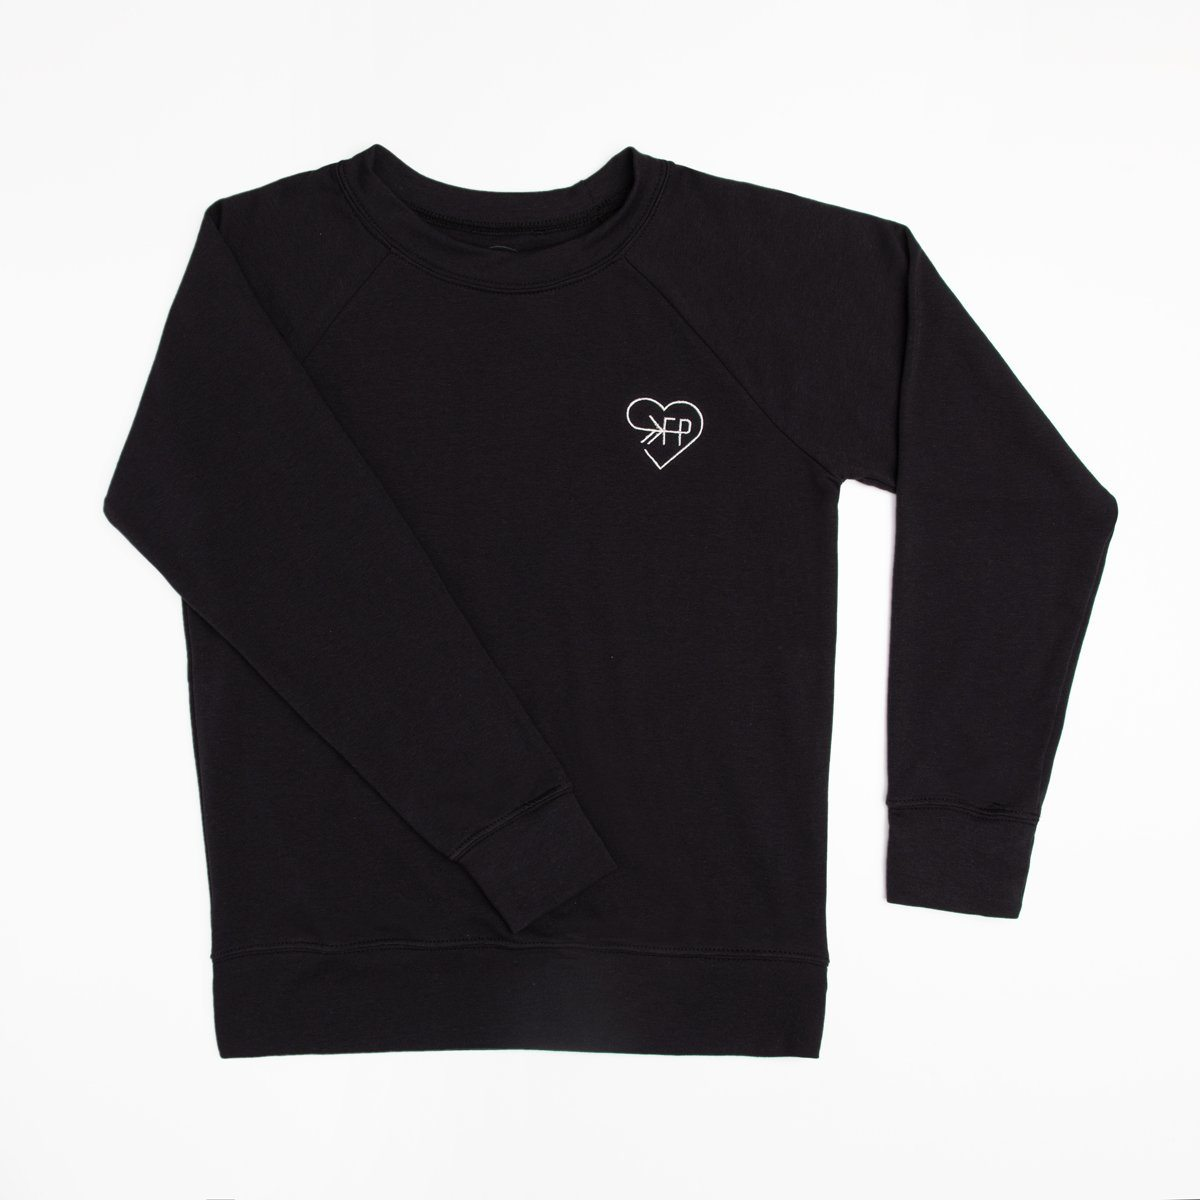 Love FP Black Crew Sweatshirt